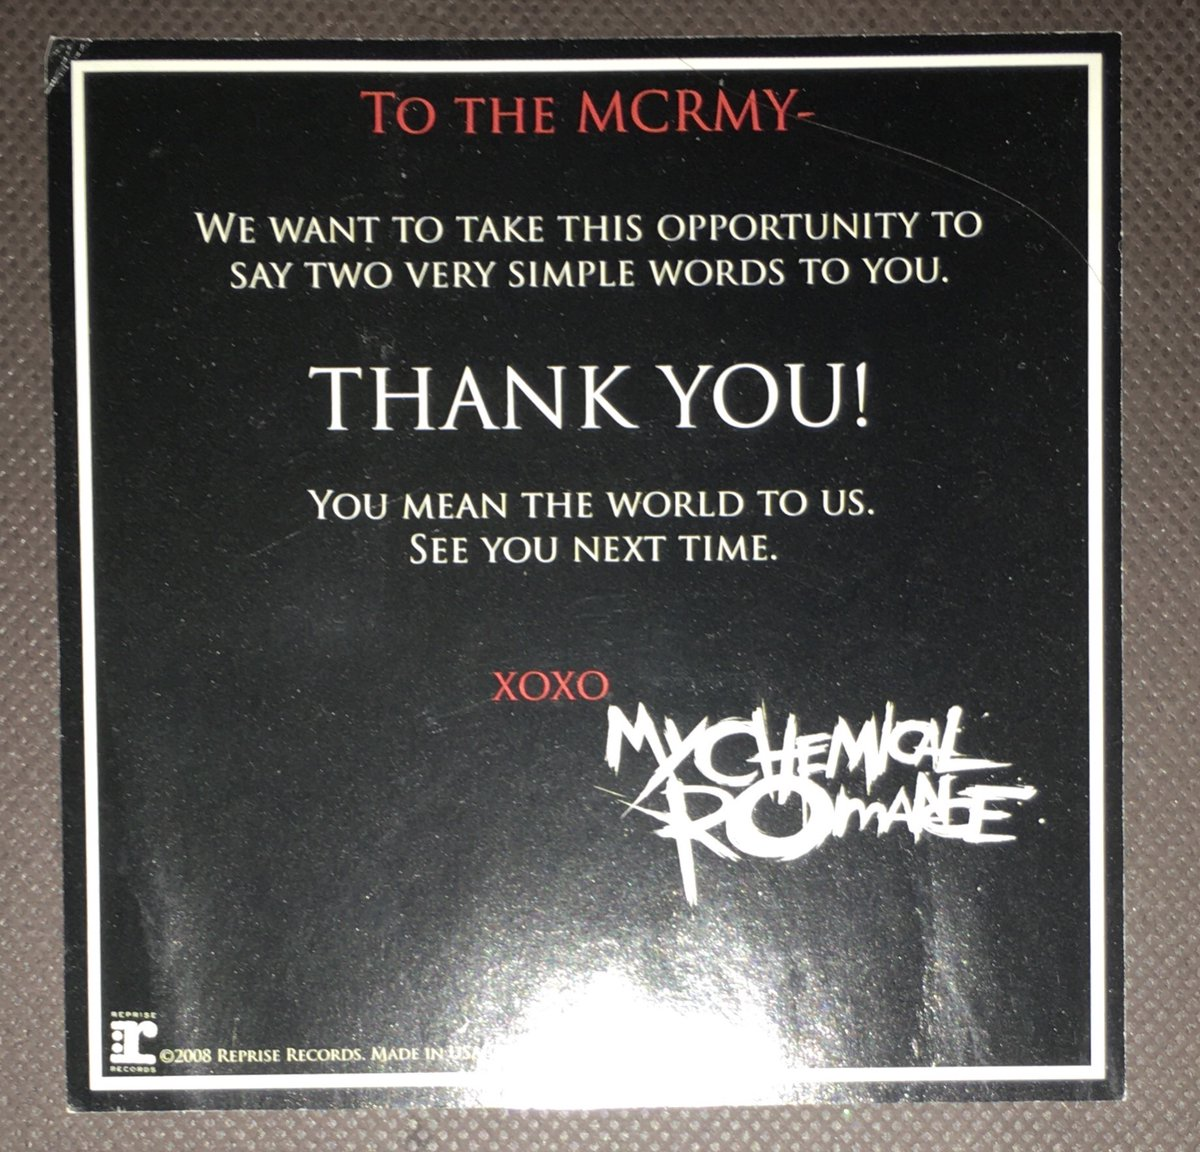 Aw. Black Parade life. #mcr @MCRofficial #housecleaning https://t.co/ue6ty2z1n8